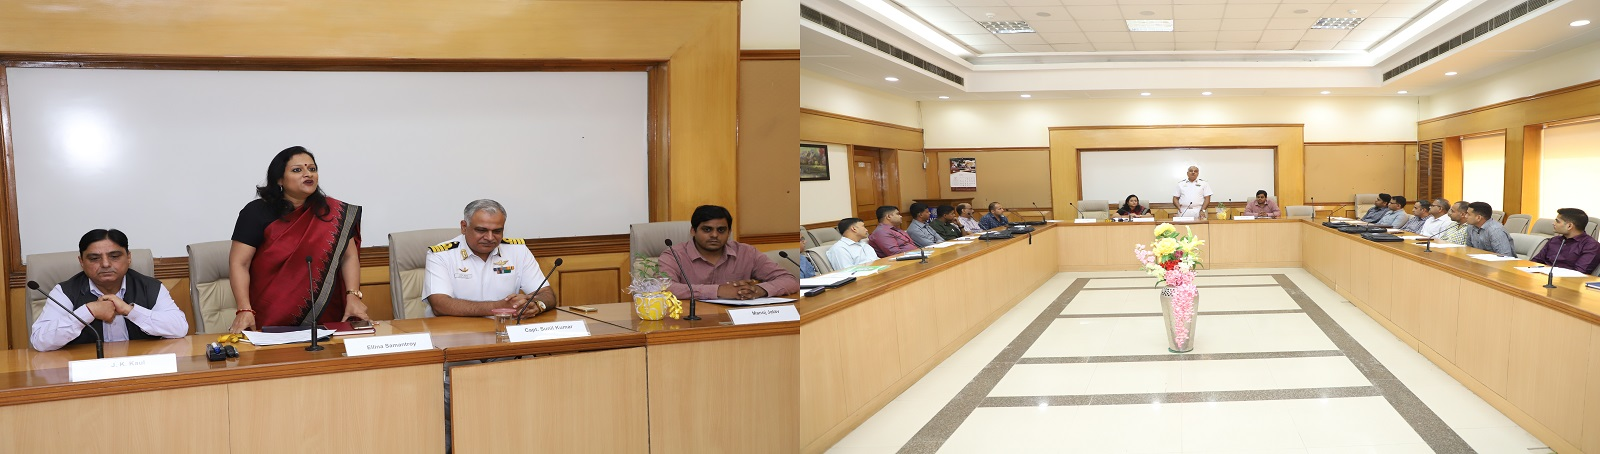 "VVGNLI is organizing a training programme on ""Labour Laws and Trade Unionism"" for officers of the Indian Navy during 11-16 November 2019 at its campus. The programme was inaugurated by Cap. Sunil Kumar, Capt (CP) – Training, Directorate of Civilian Person"